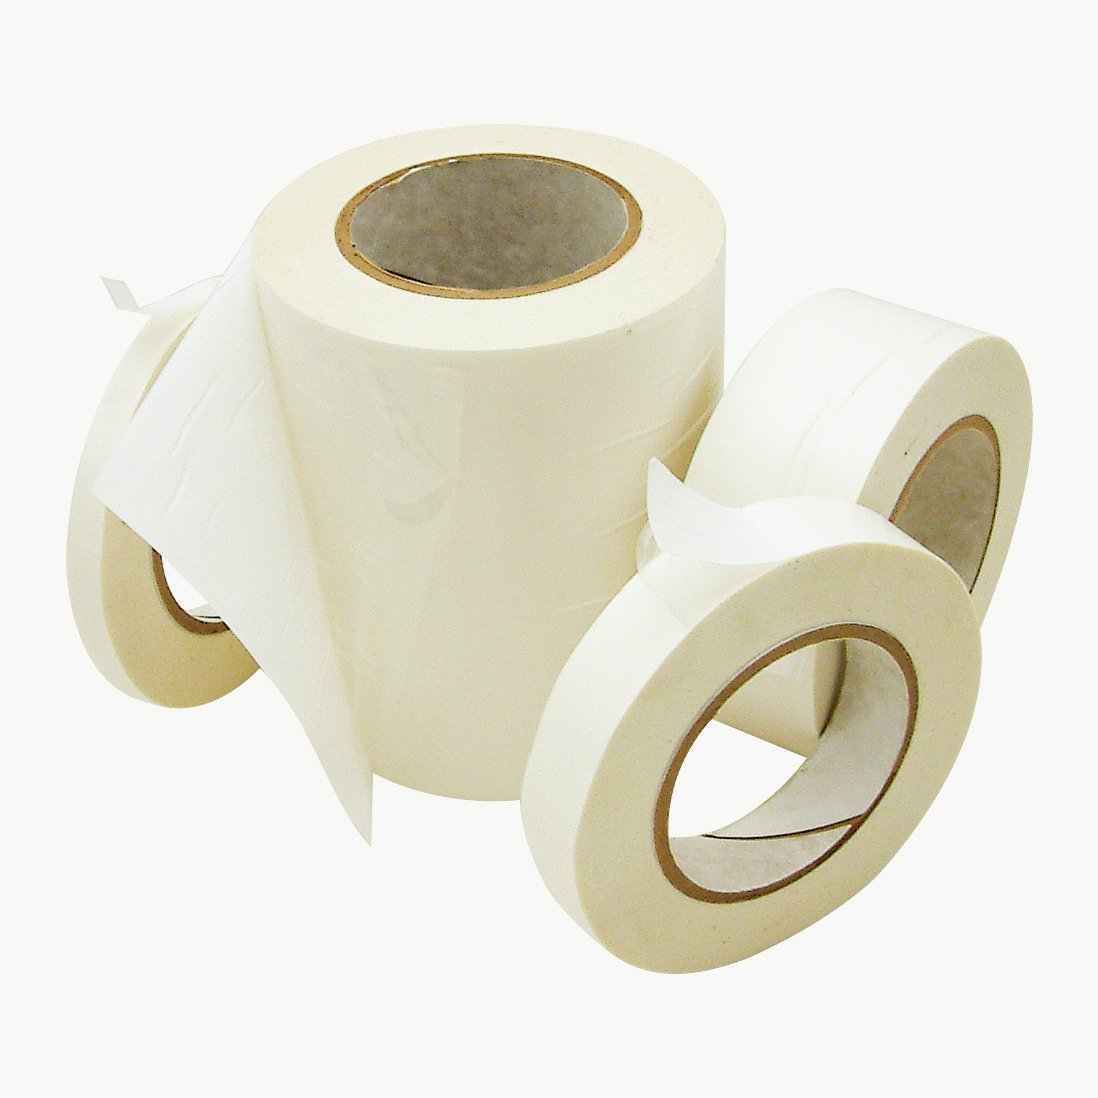 J.V. Converting DC-4016R/P/CLR0560 JVCC DC-4016R/P Double Coated Removable/Permanent Tape: 1/2 x 60 yd., Clear